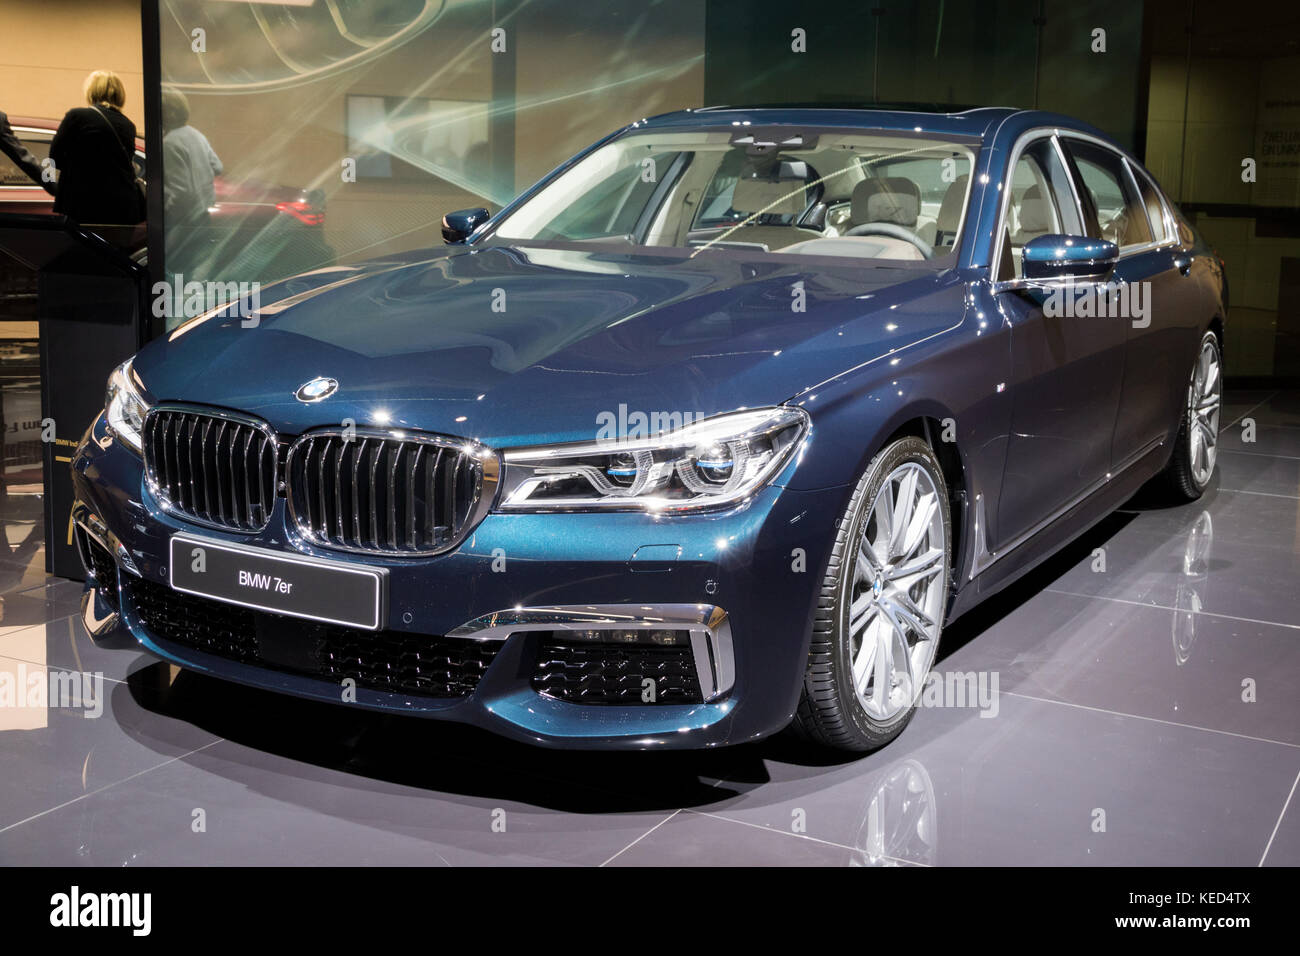 bmw 7 series stock photos bmw 7 series stock images alamy. Black Bedroom Furniture Sets. Home Design Ideas